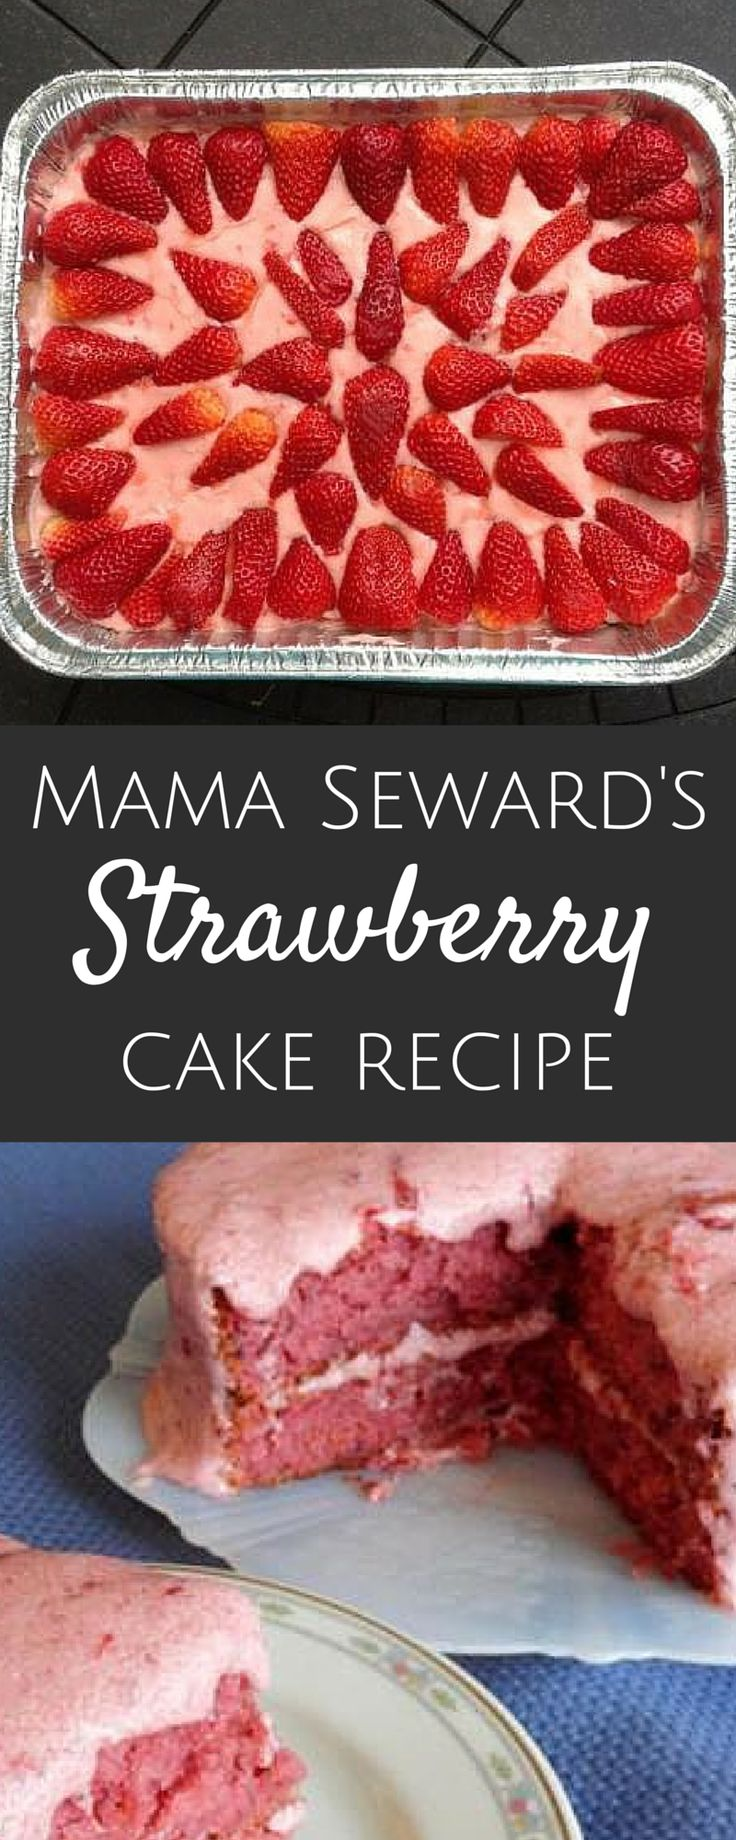 """Mama Seward's Strawberry Cake Recipe 